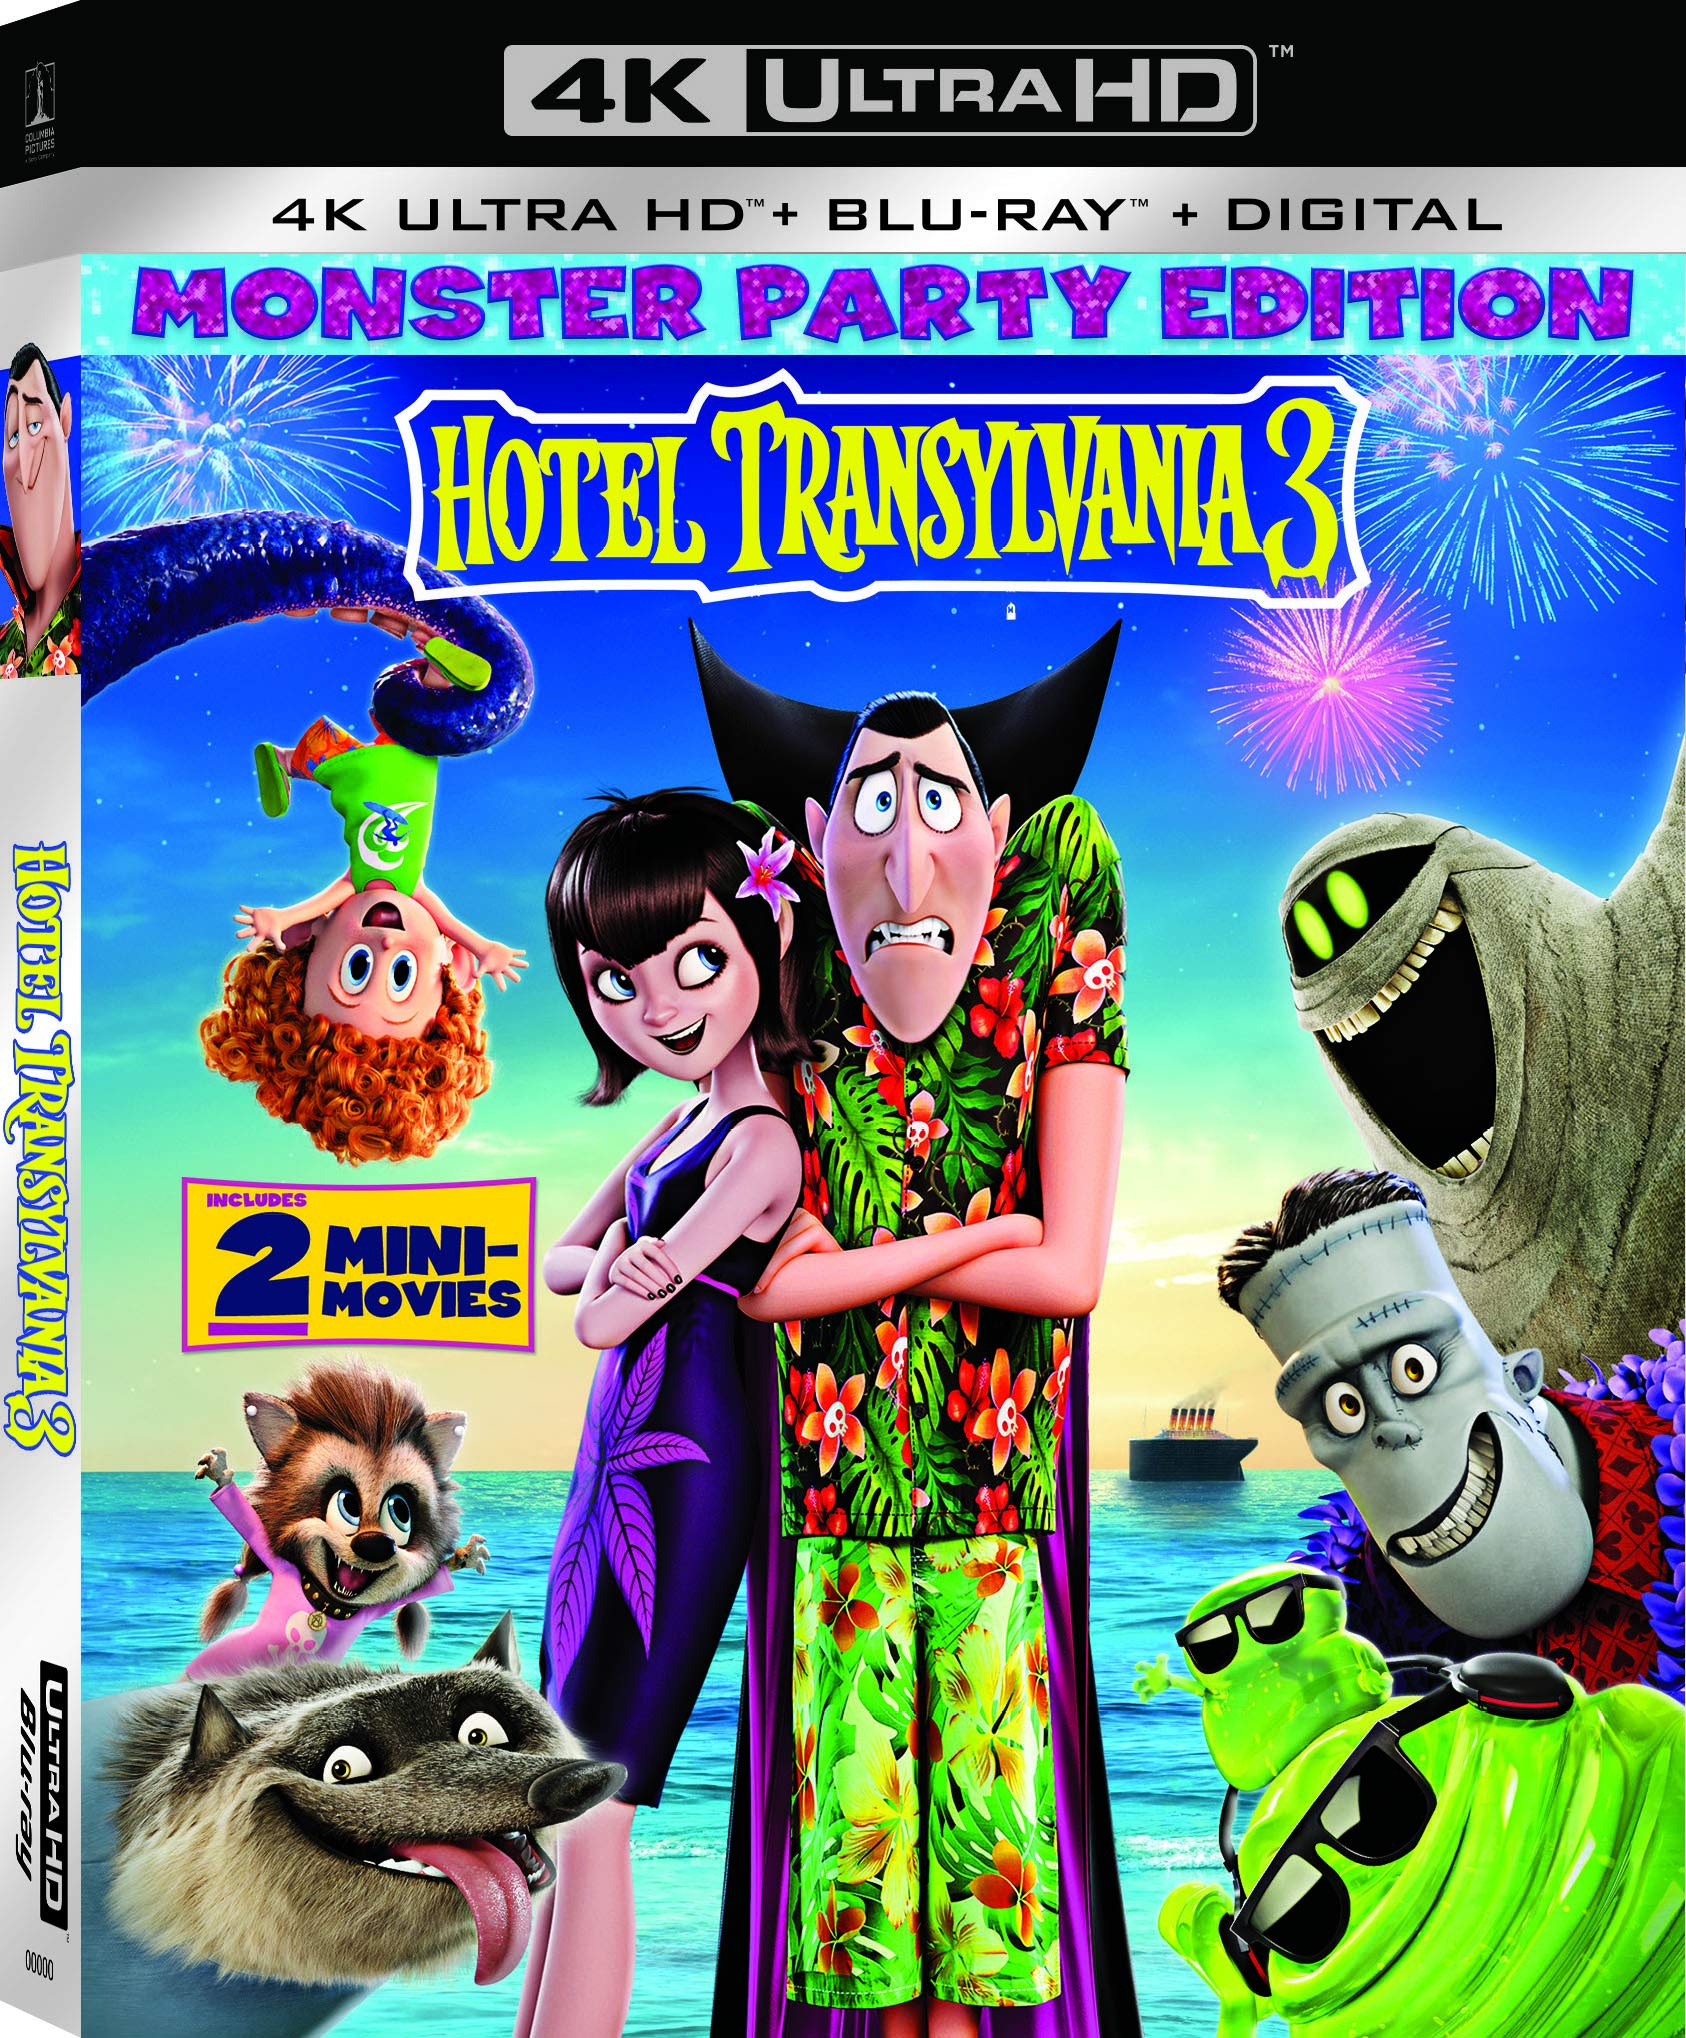 4K Blu-ray : Hotel Transylvania 3: Summer Vacation (With Blu-ray, 4K Mastering, 2 Pack, Digital Copy)